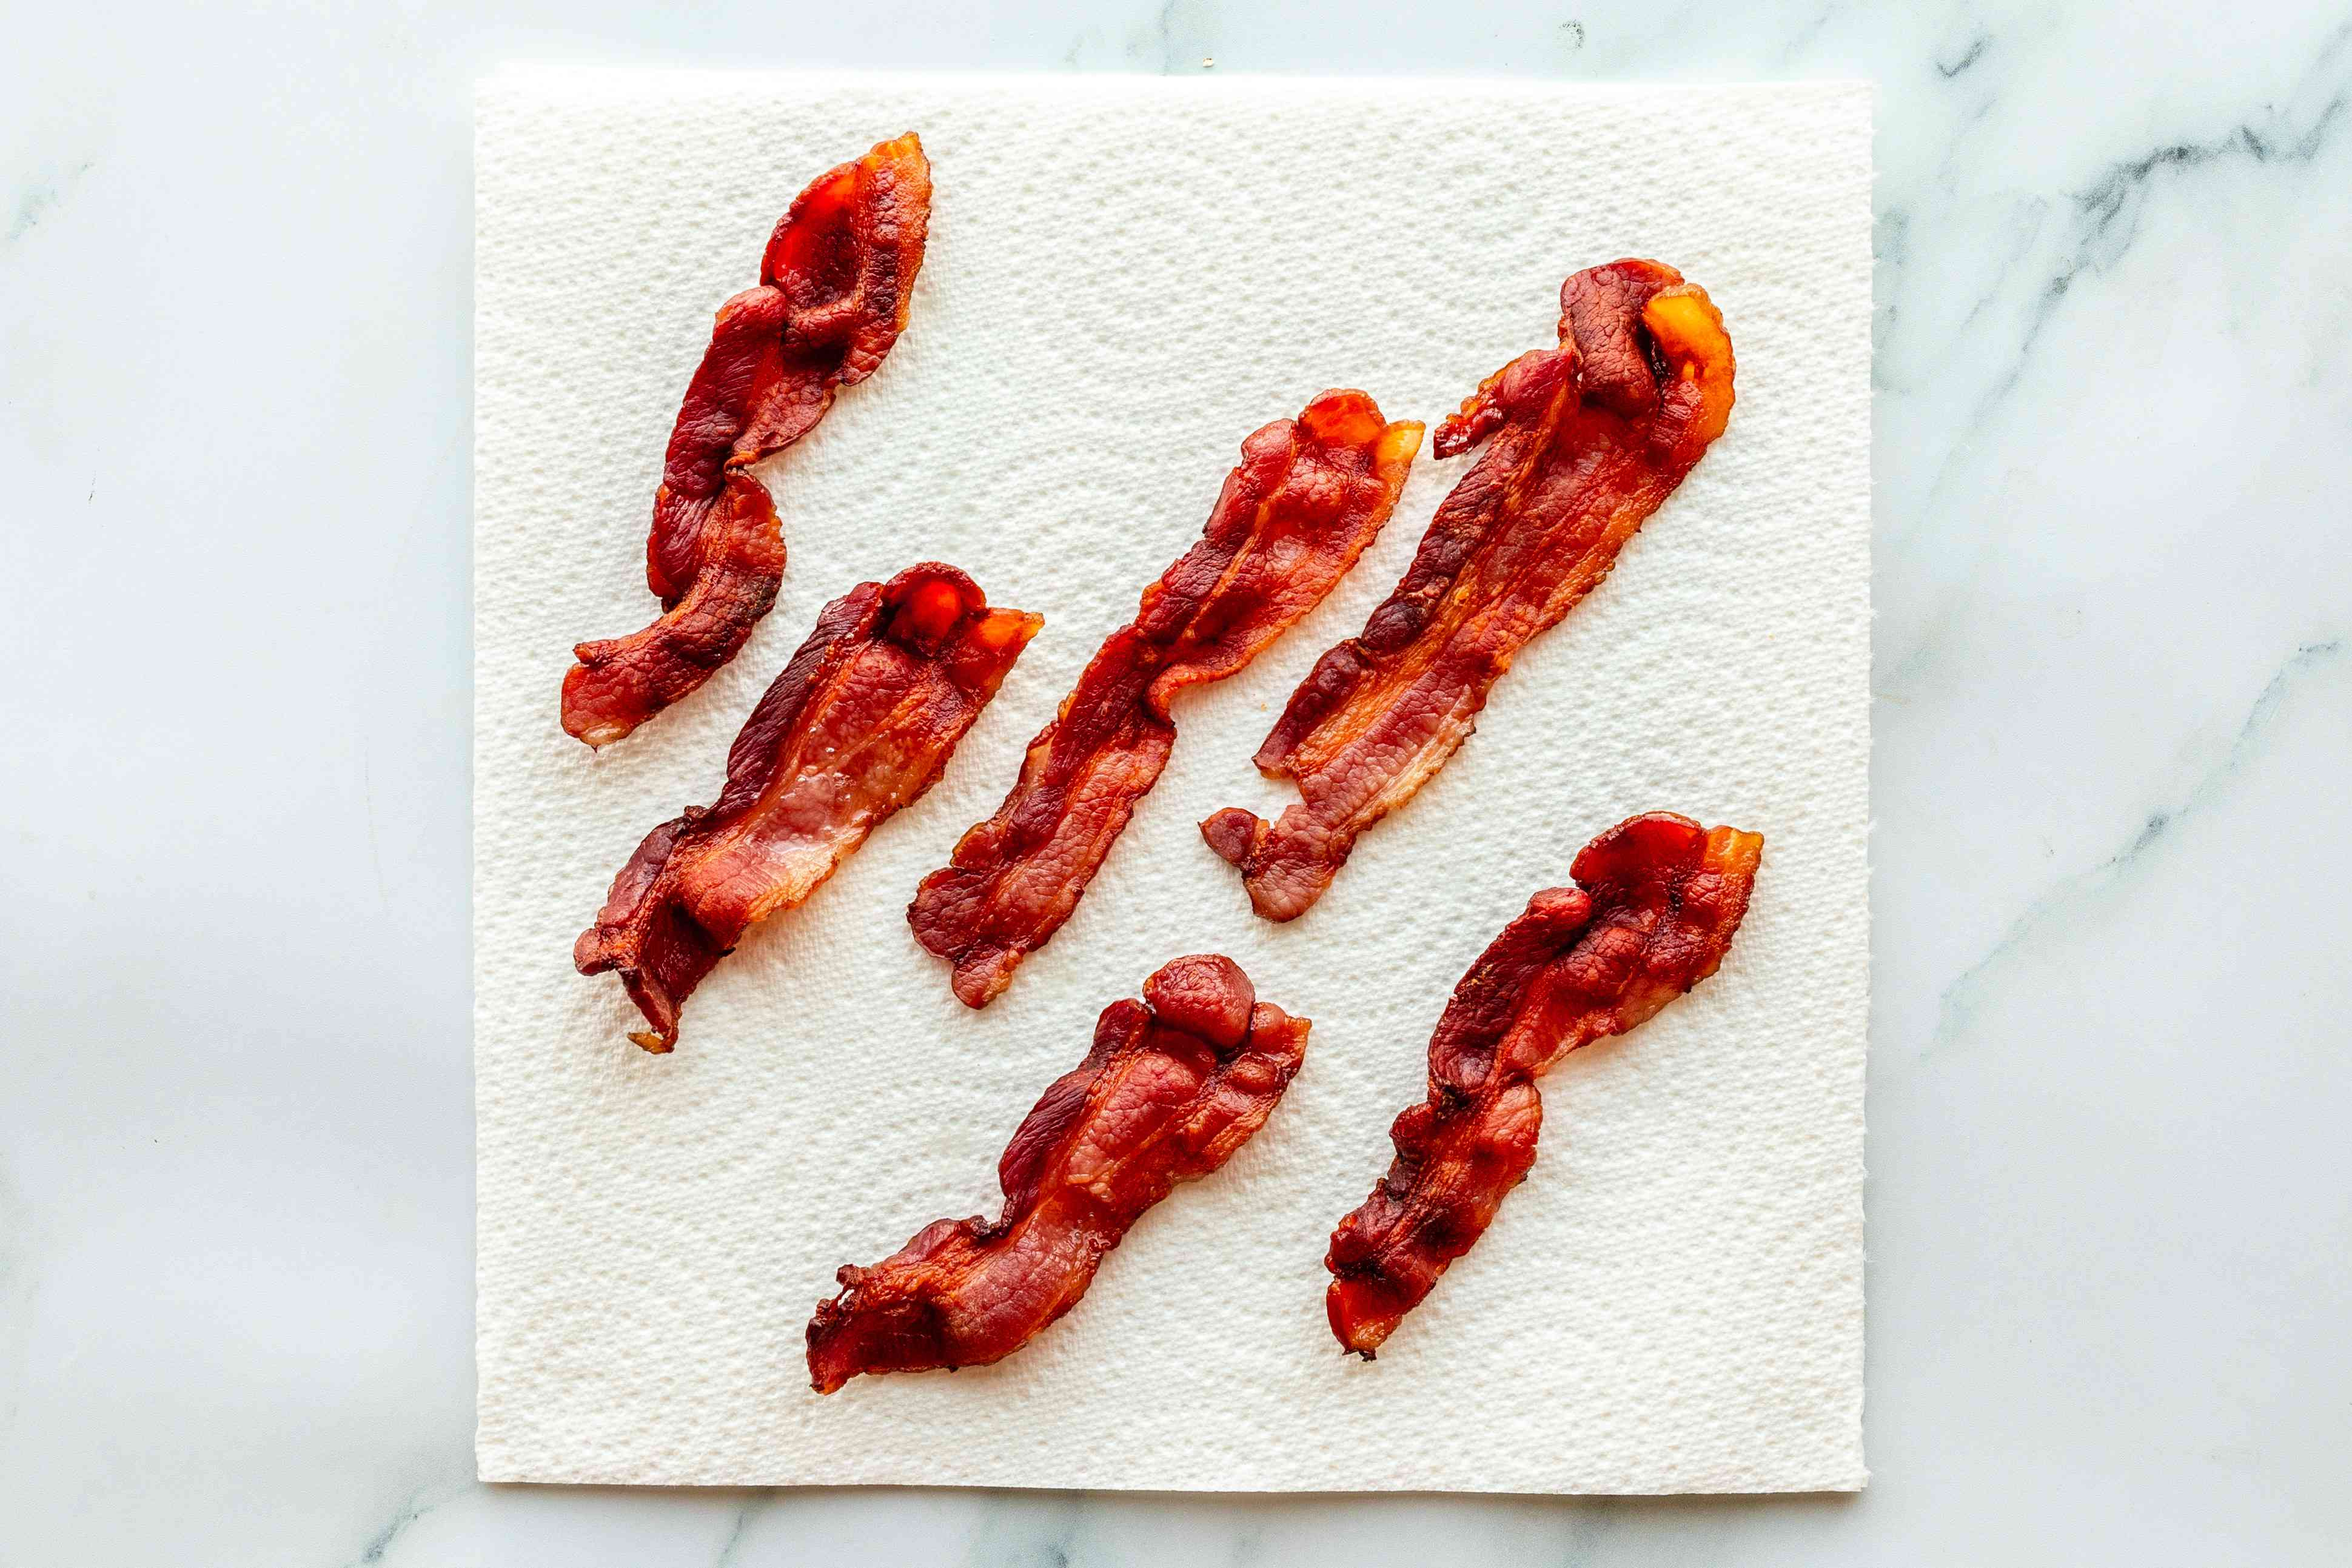 Six slices of microwaved bacon on a clean paper towel